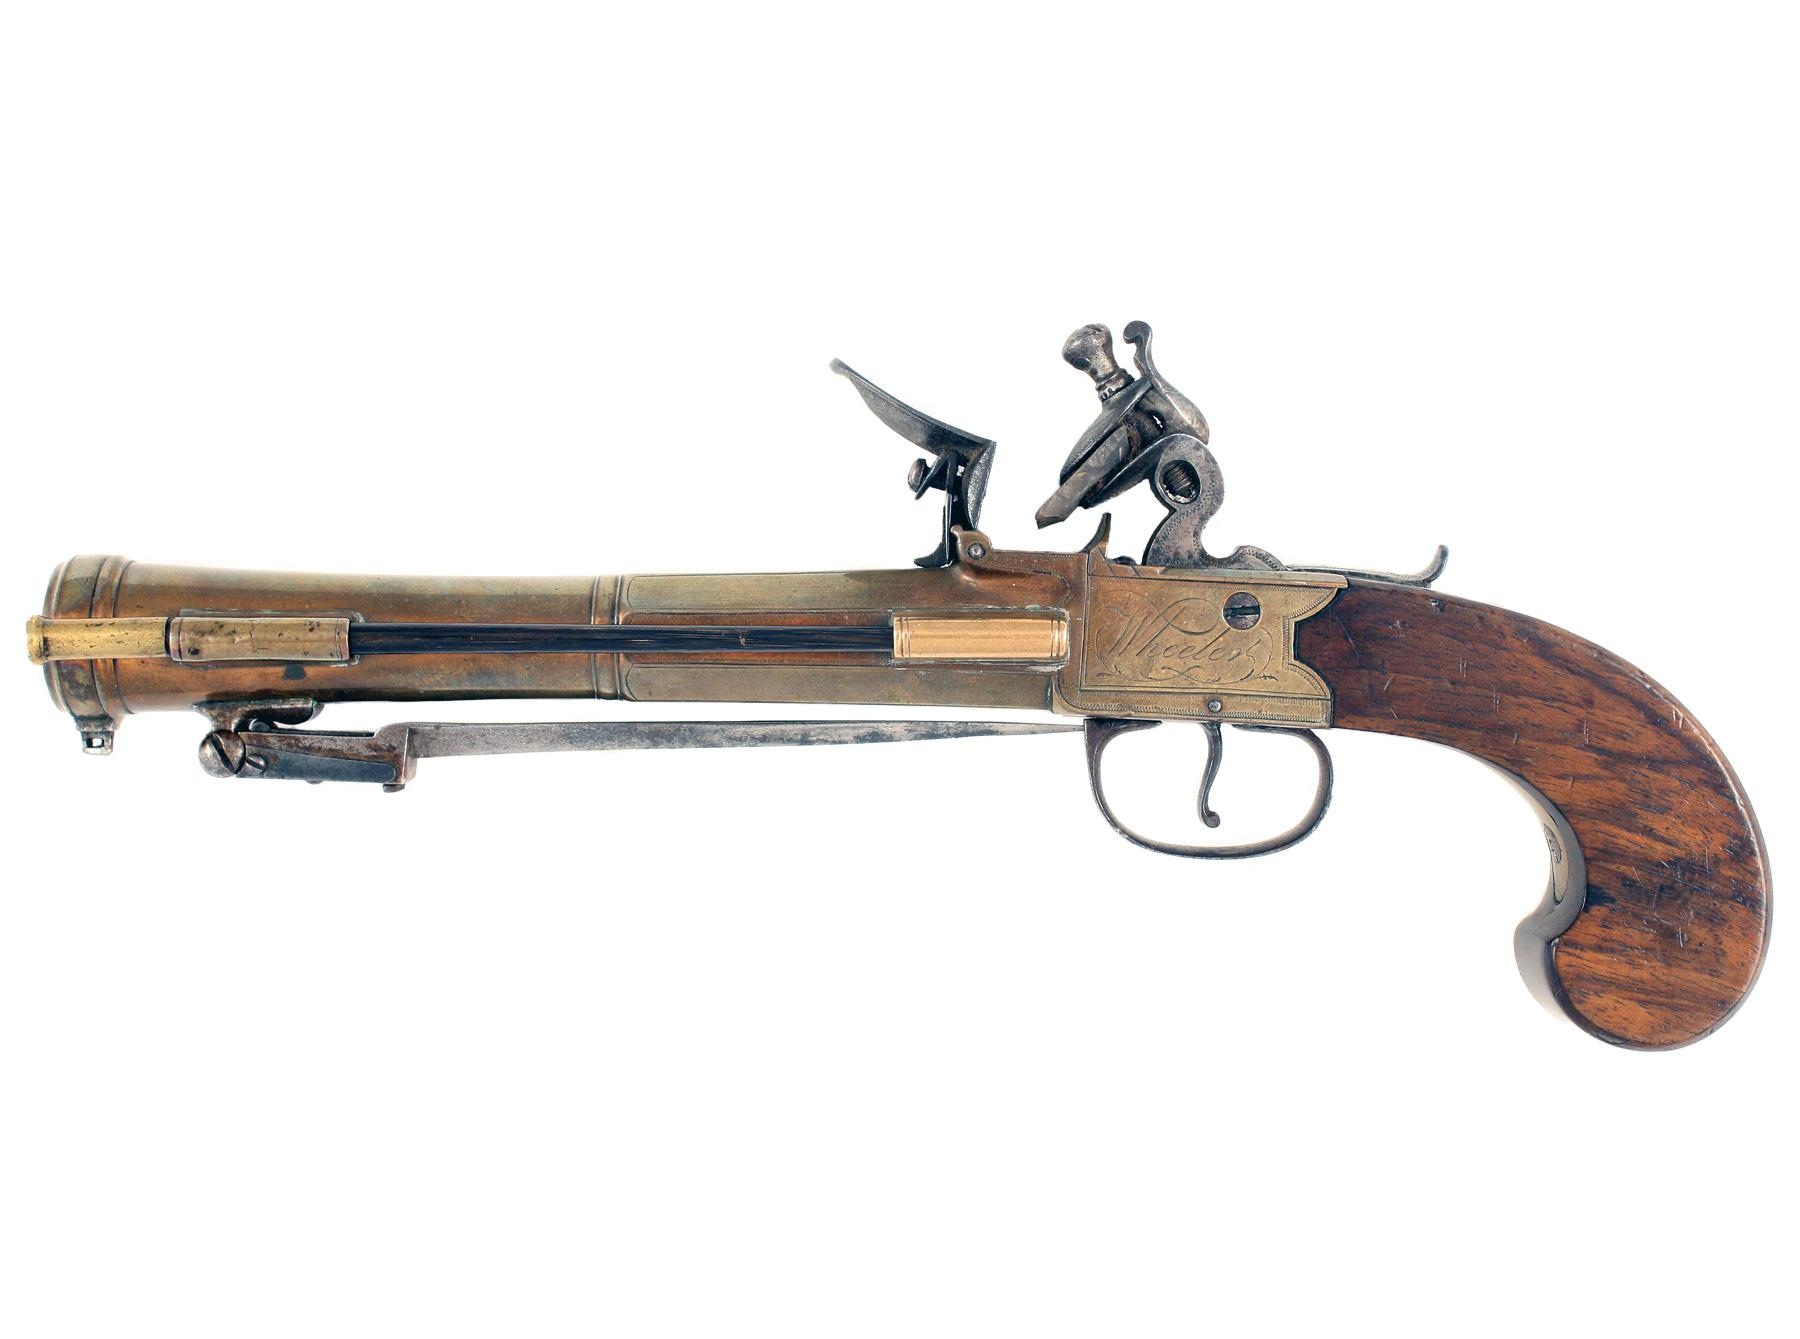 A Bronze Barrelled Flintlock Blunderbuss Pistol